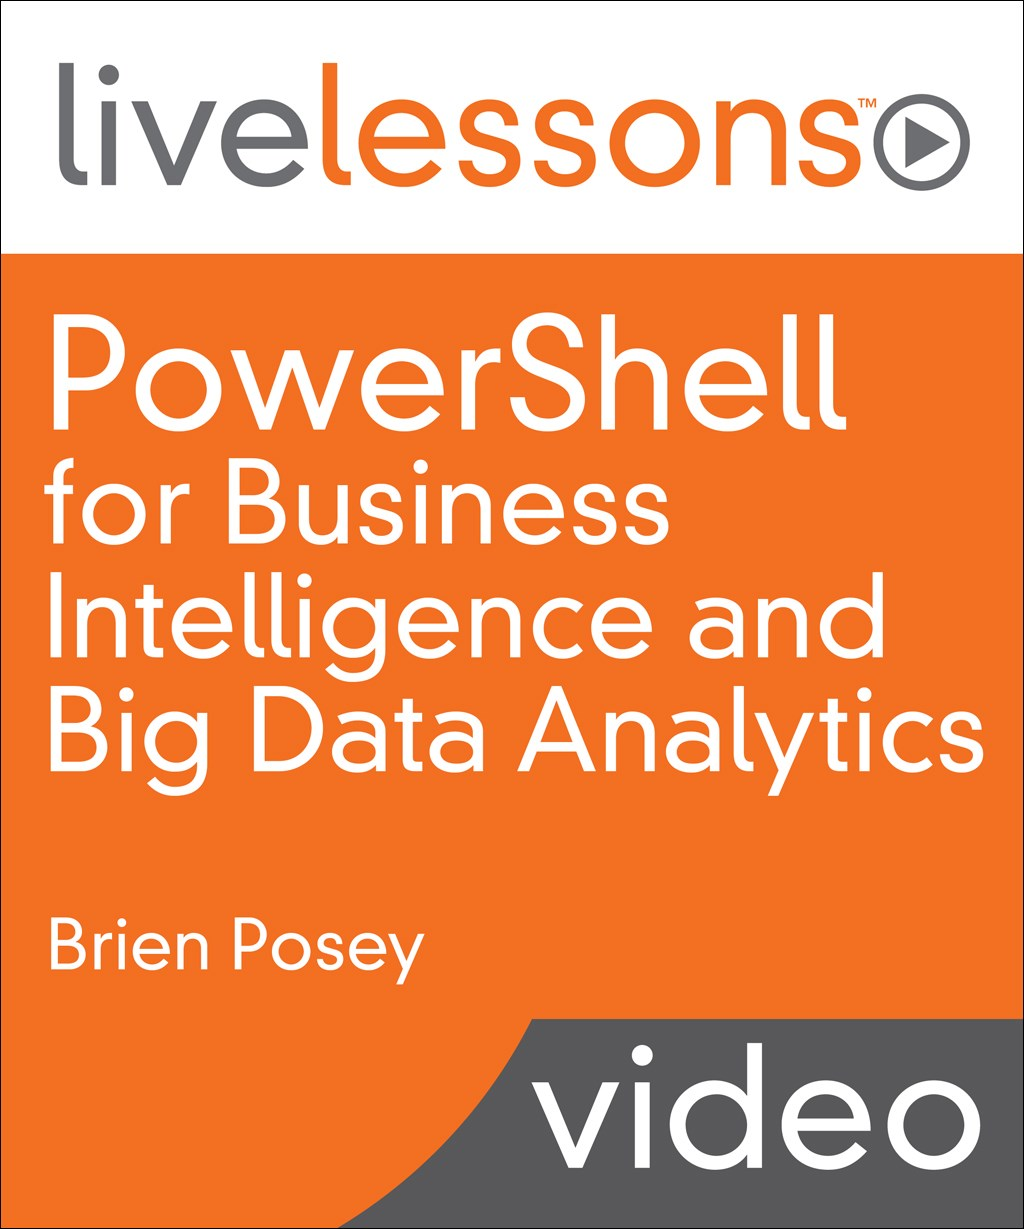 PowerShell for Business Intelligence and Big Data Analytics